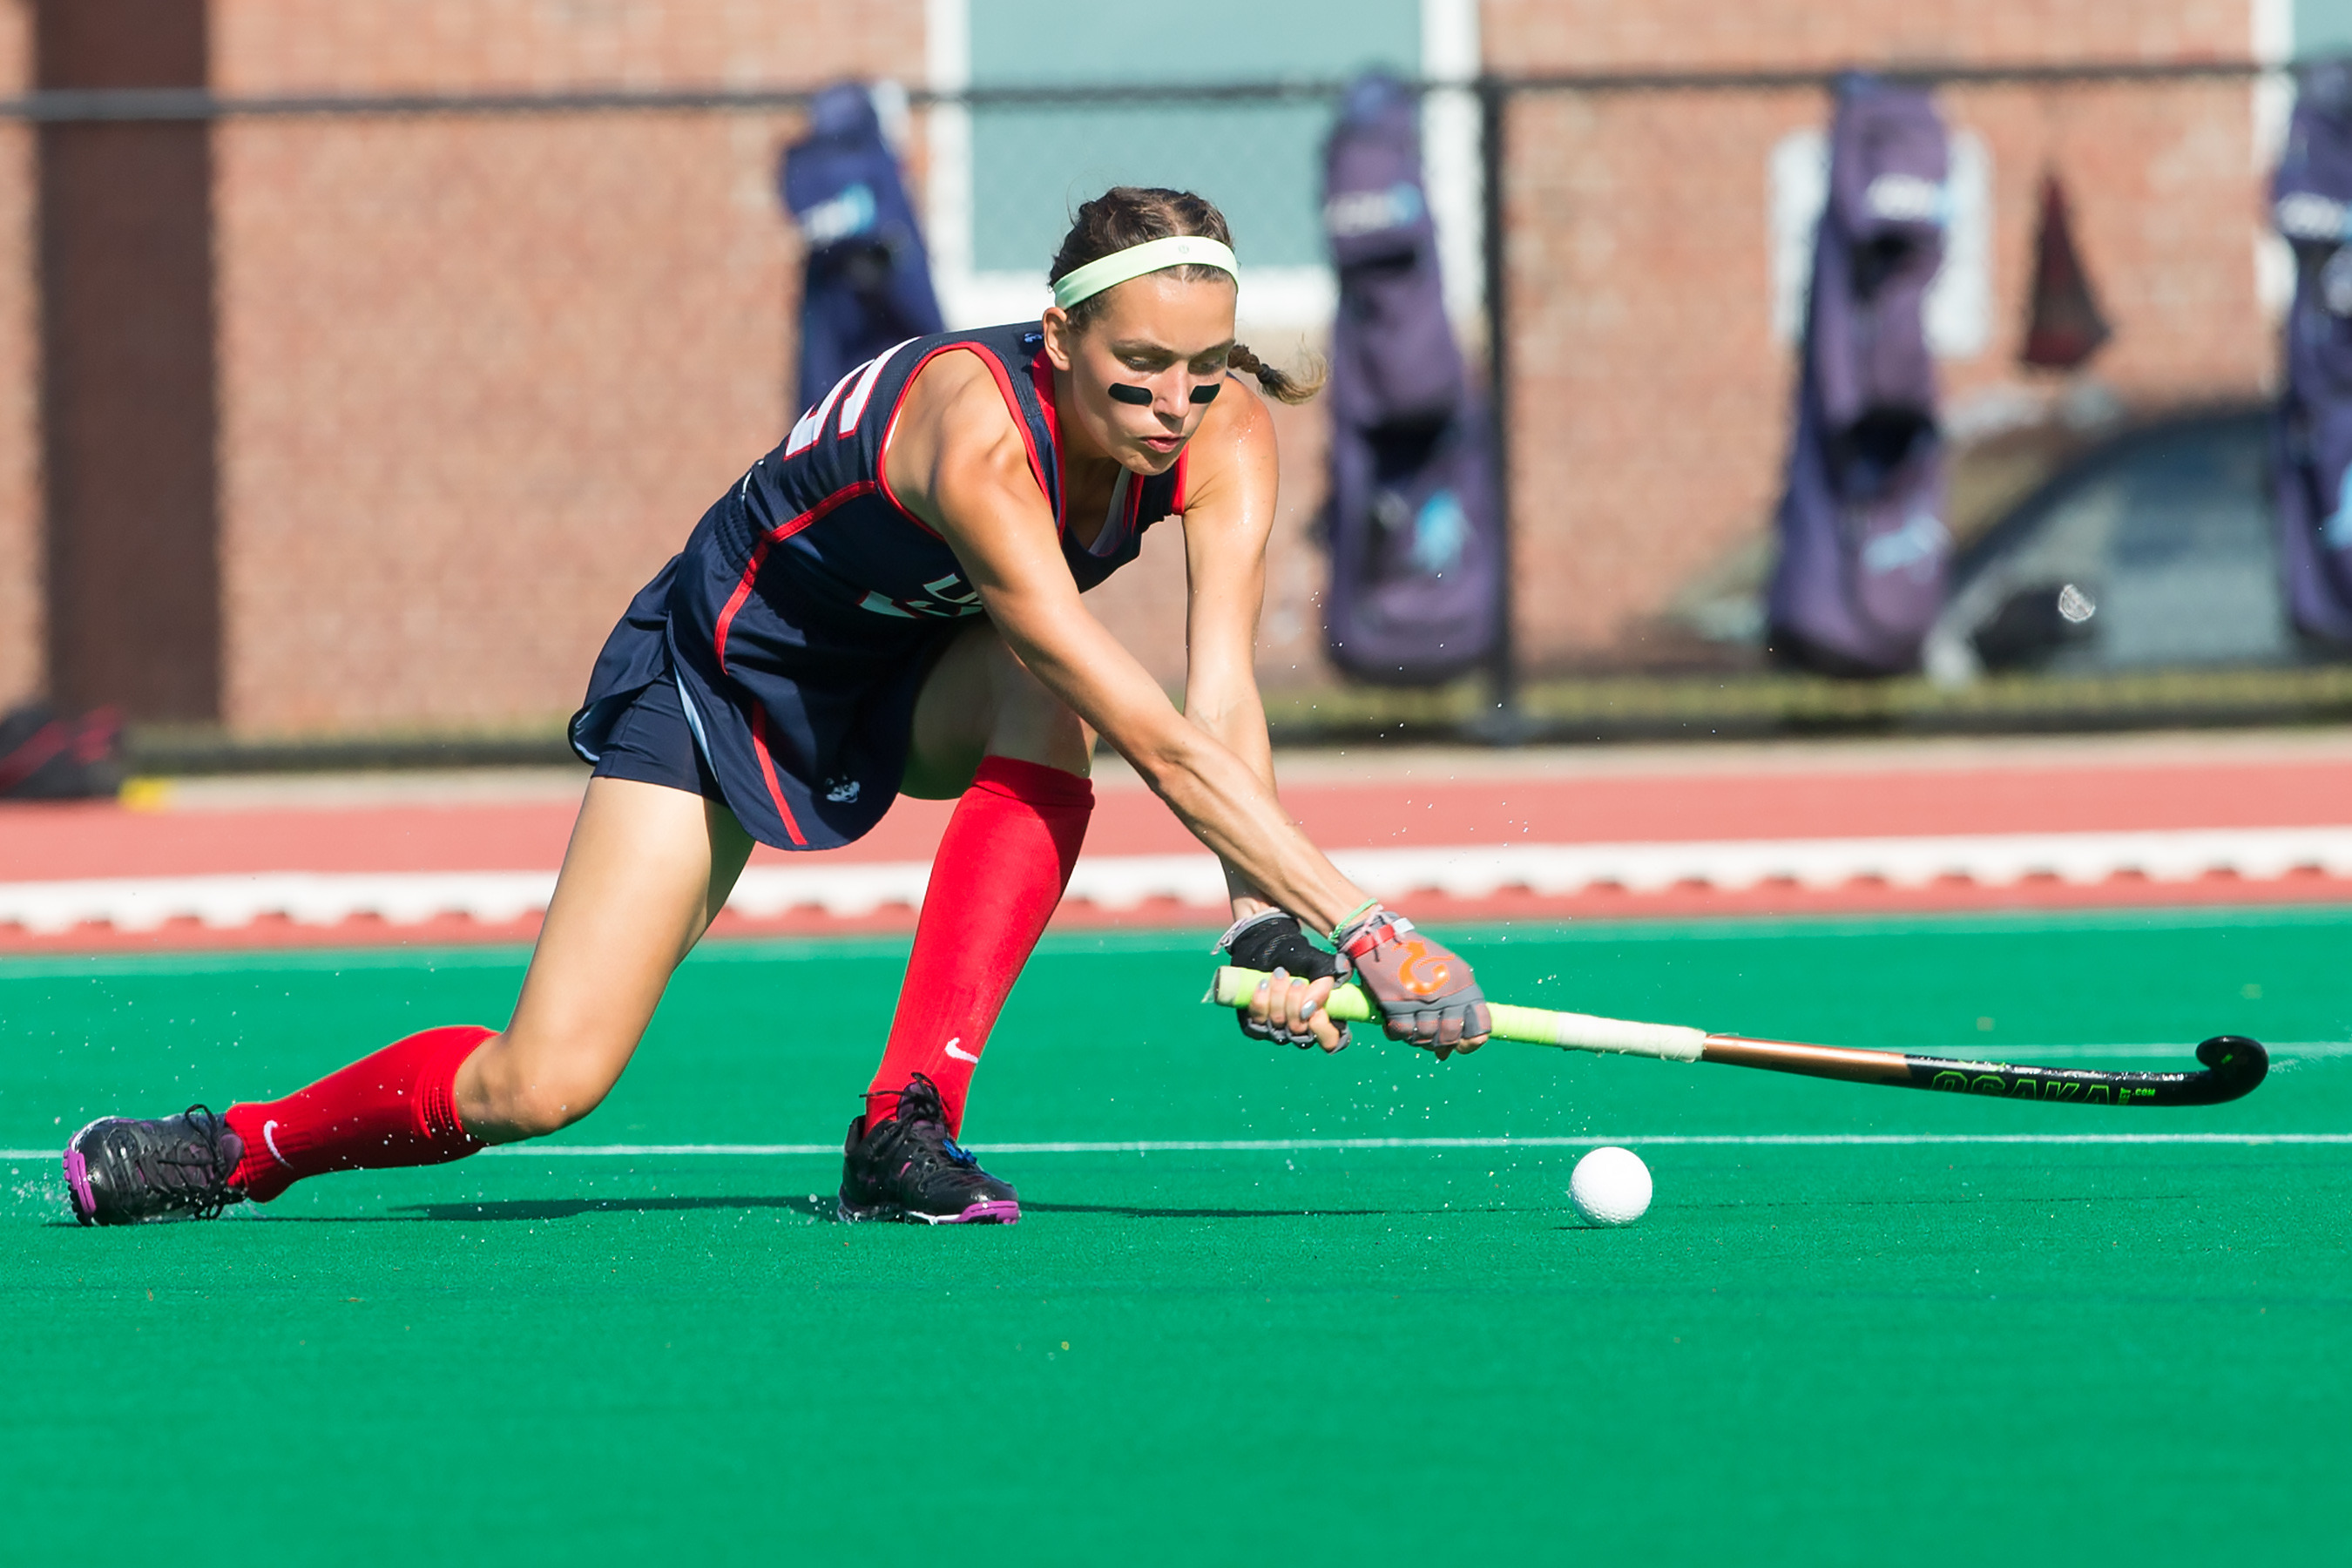 Junior Charlotte Veitner is tied for 2nd in UConn field hockey all-time points, and just 36 points away from overtaking the top point scorer in program history. (Stephen Slade '89 (SFA) for UConn)